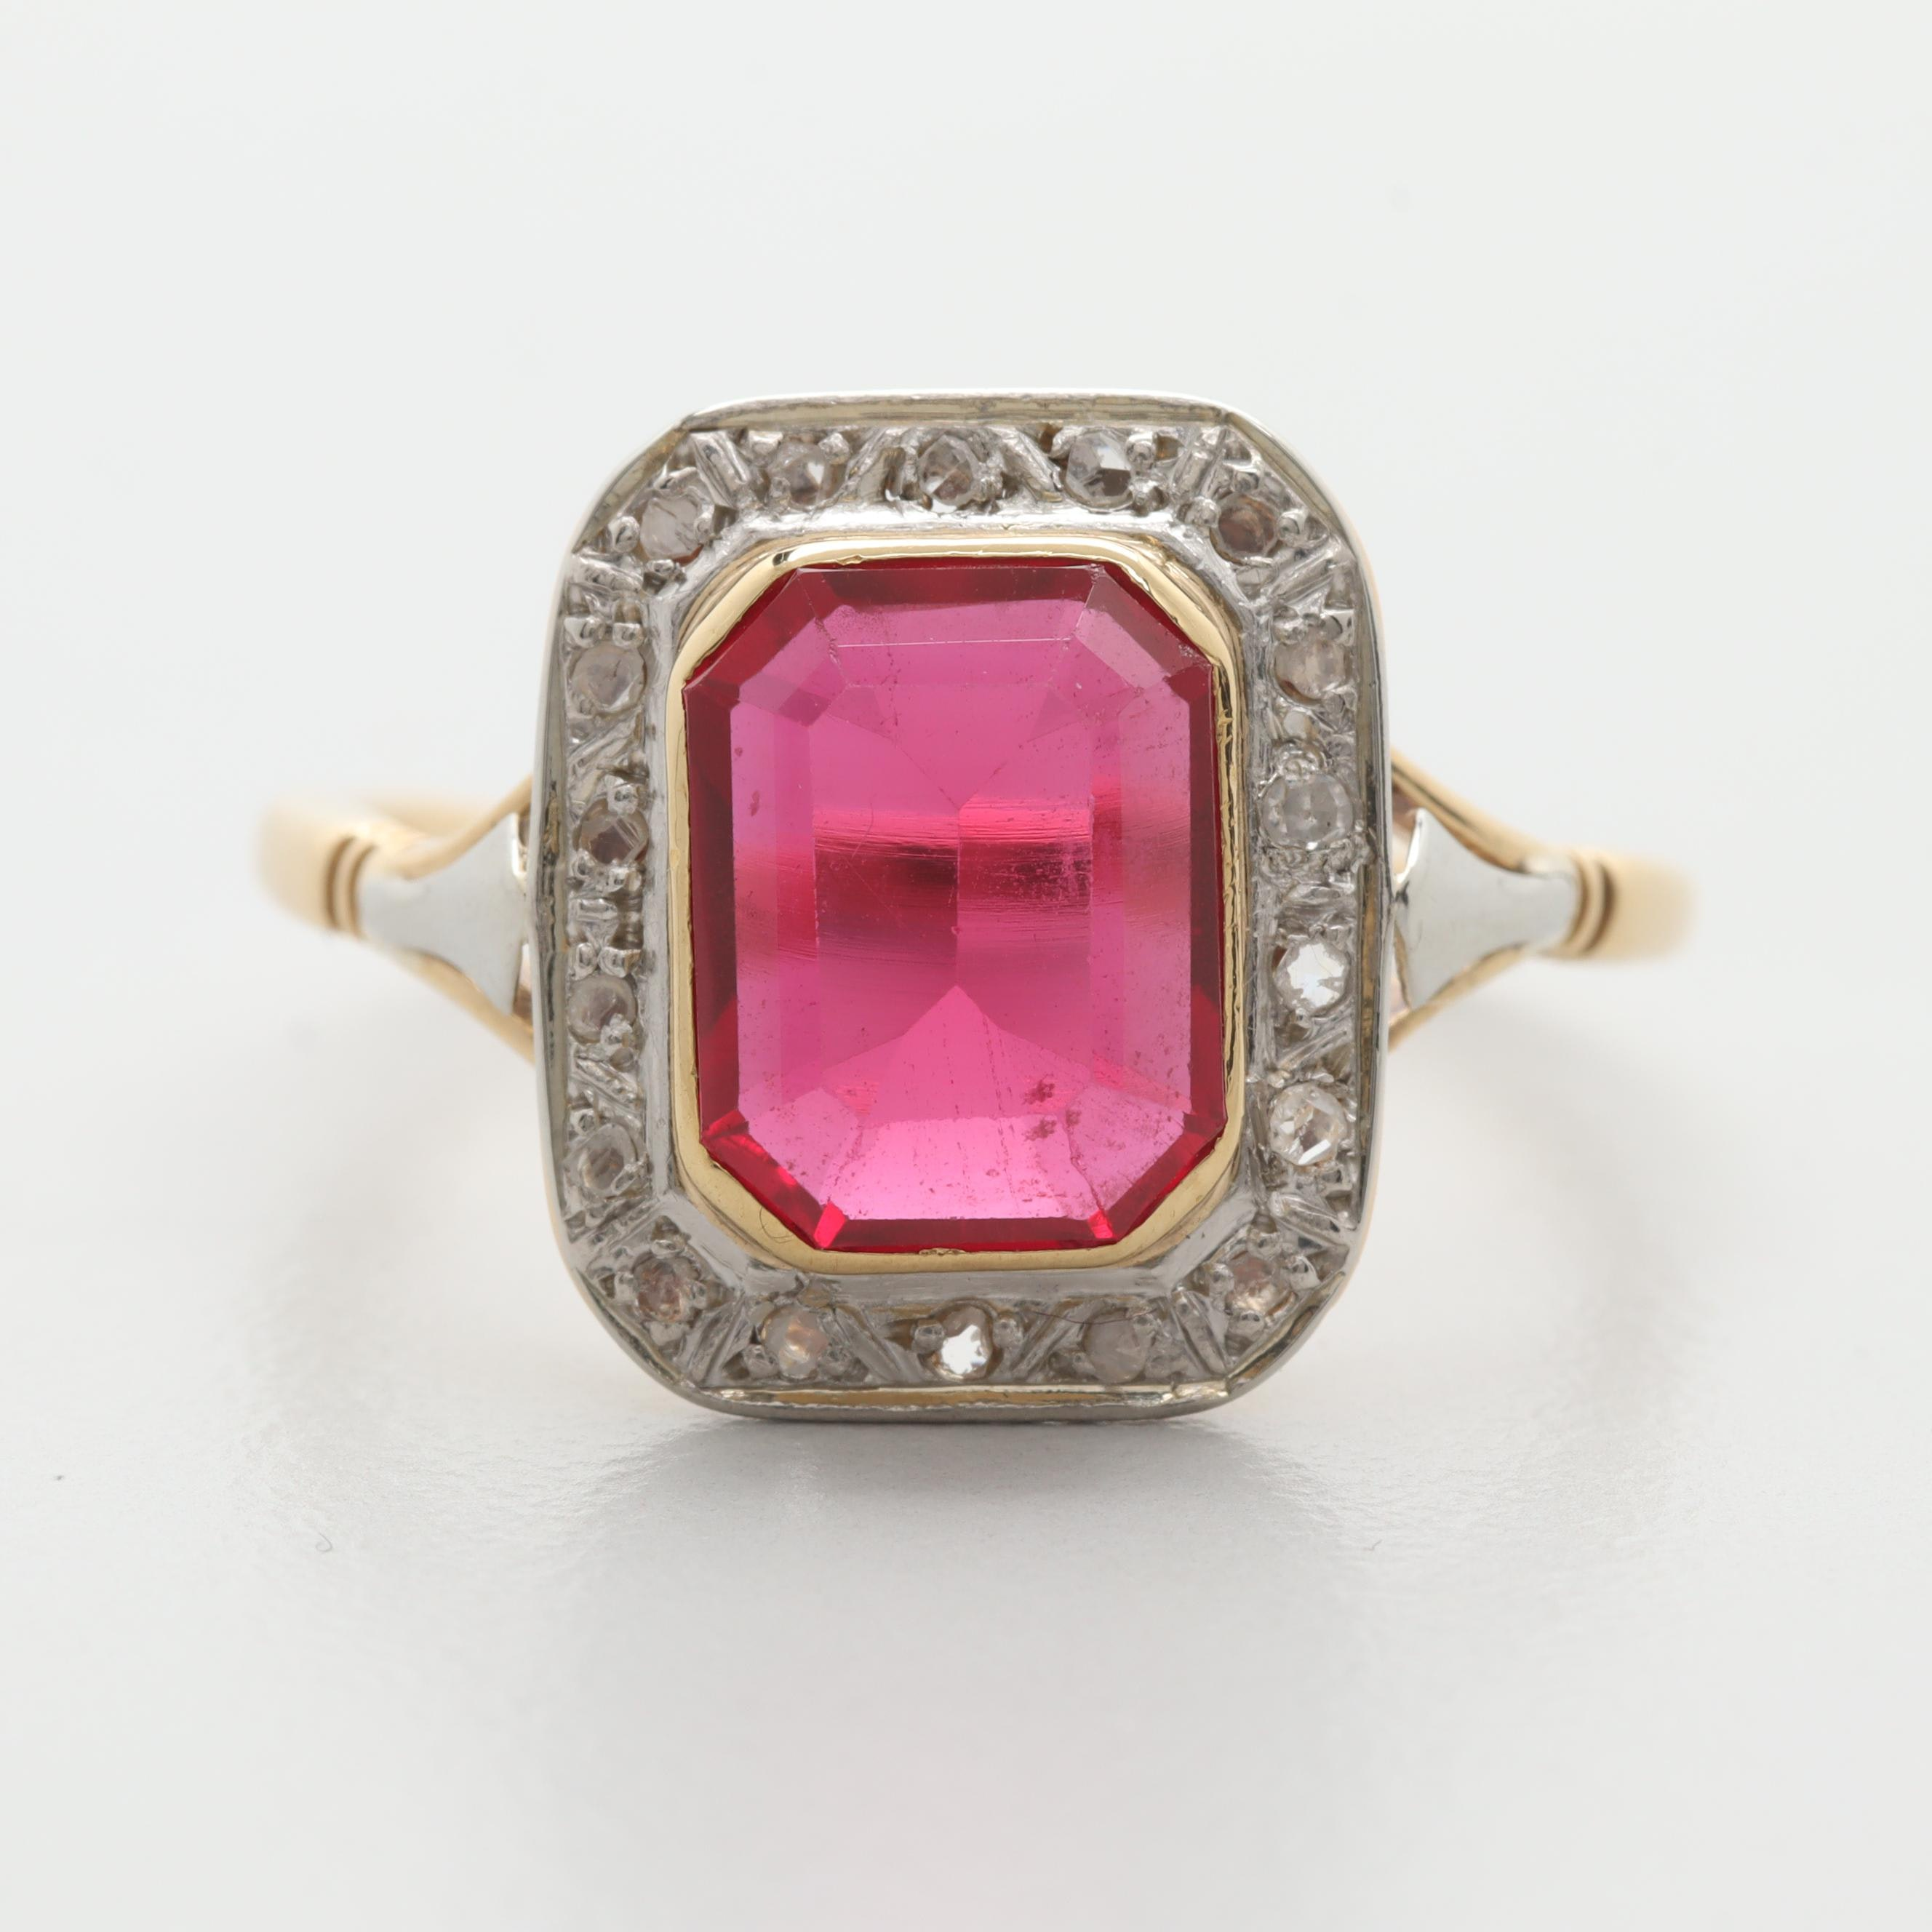 18K Yellow Gold Synthetic Ruby and Diamond Ring with 10K White Gold Trim